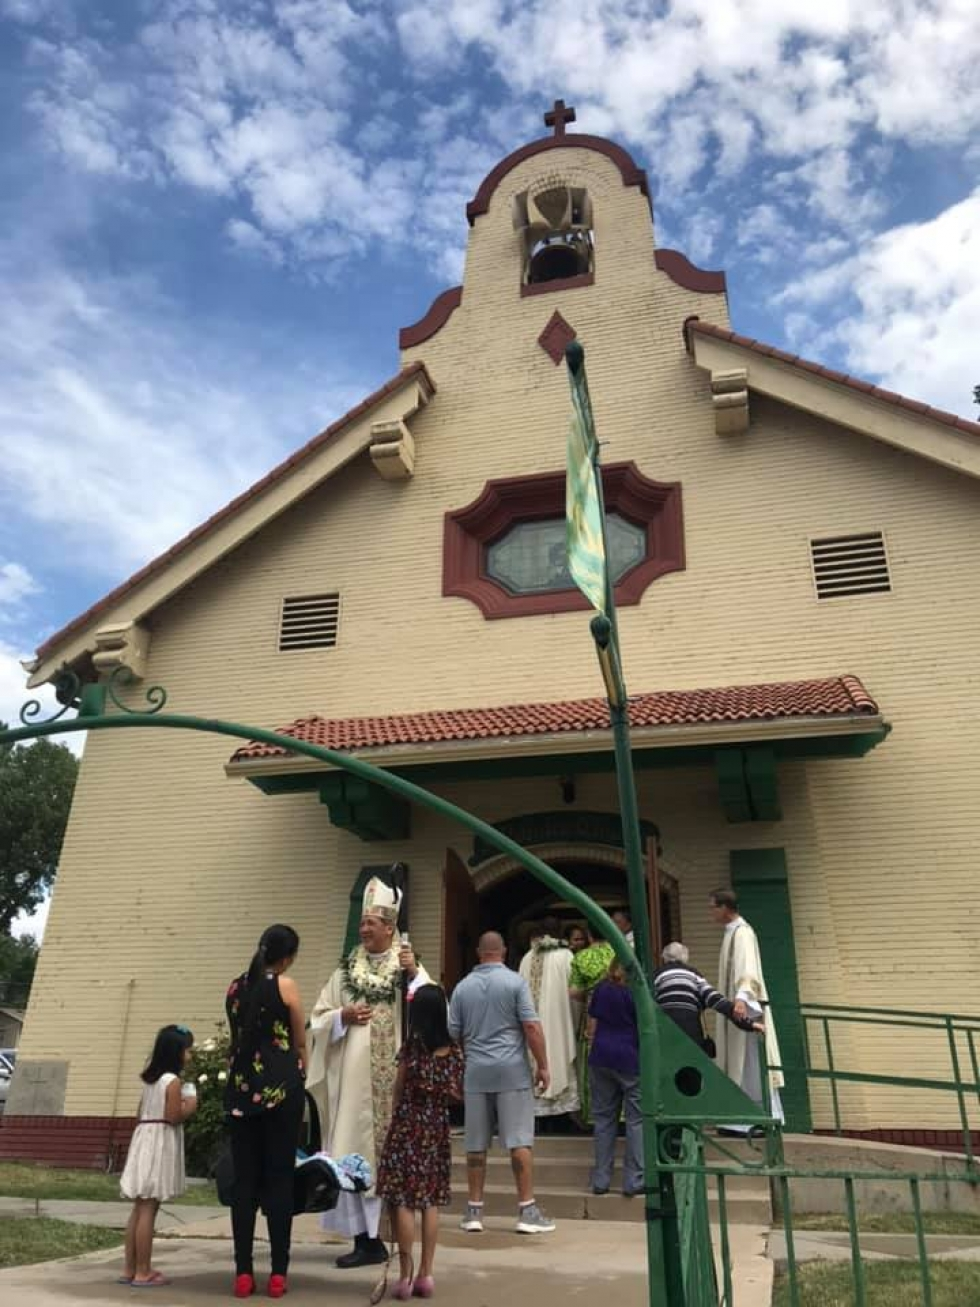 Most Reverend Oscar A. Solis, Bishop of the Catholic Diocese of Salt Lake City, greets parishioners of Saint Patrick's Church before the mass for the 100th anniversary of the dedication of the church. Photos courtesy of Intermountain Catholic